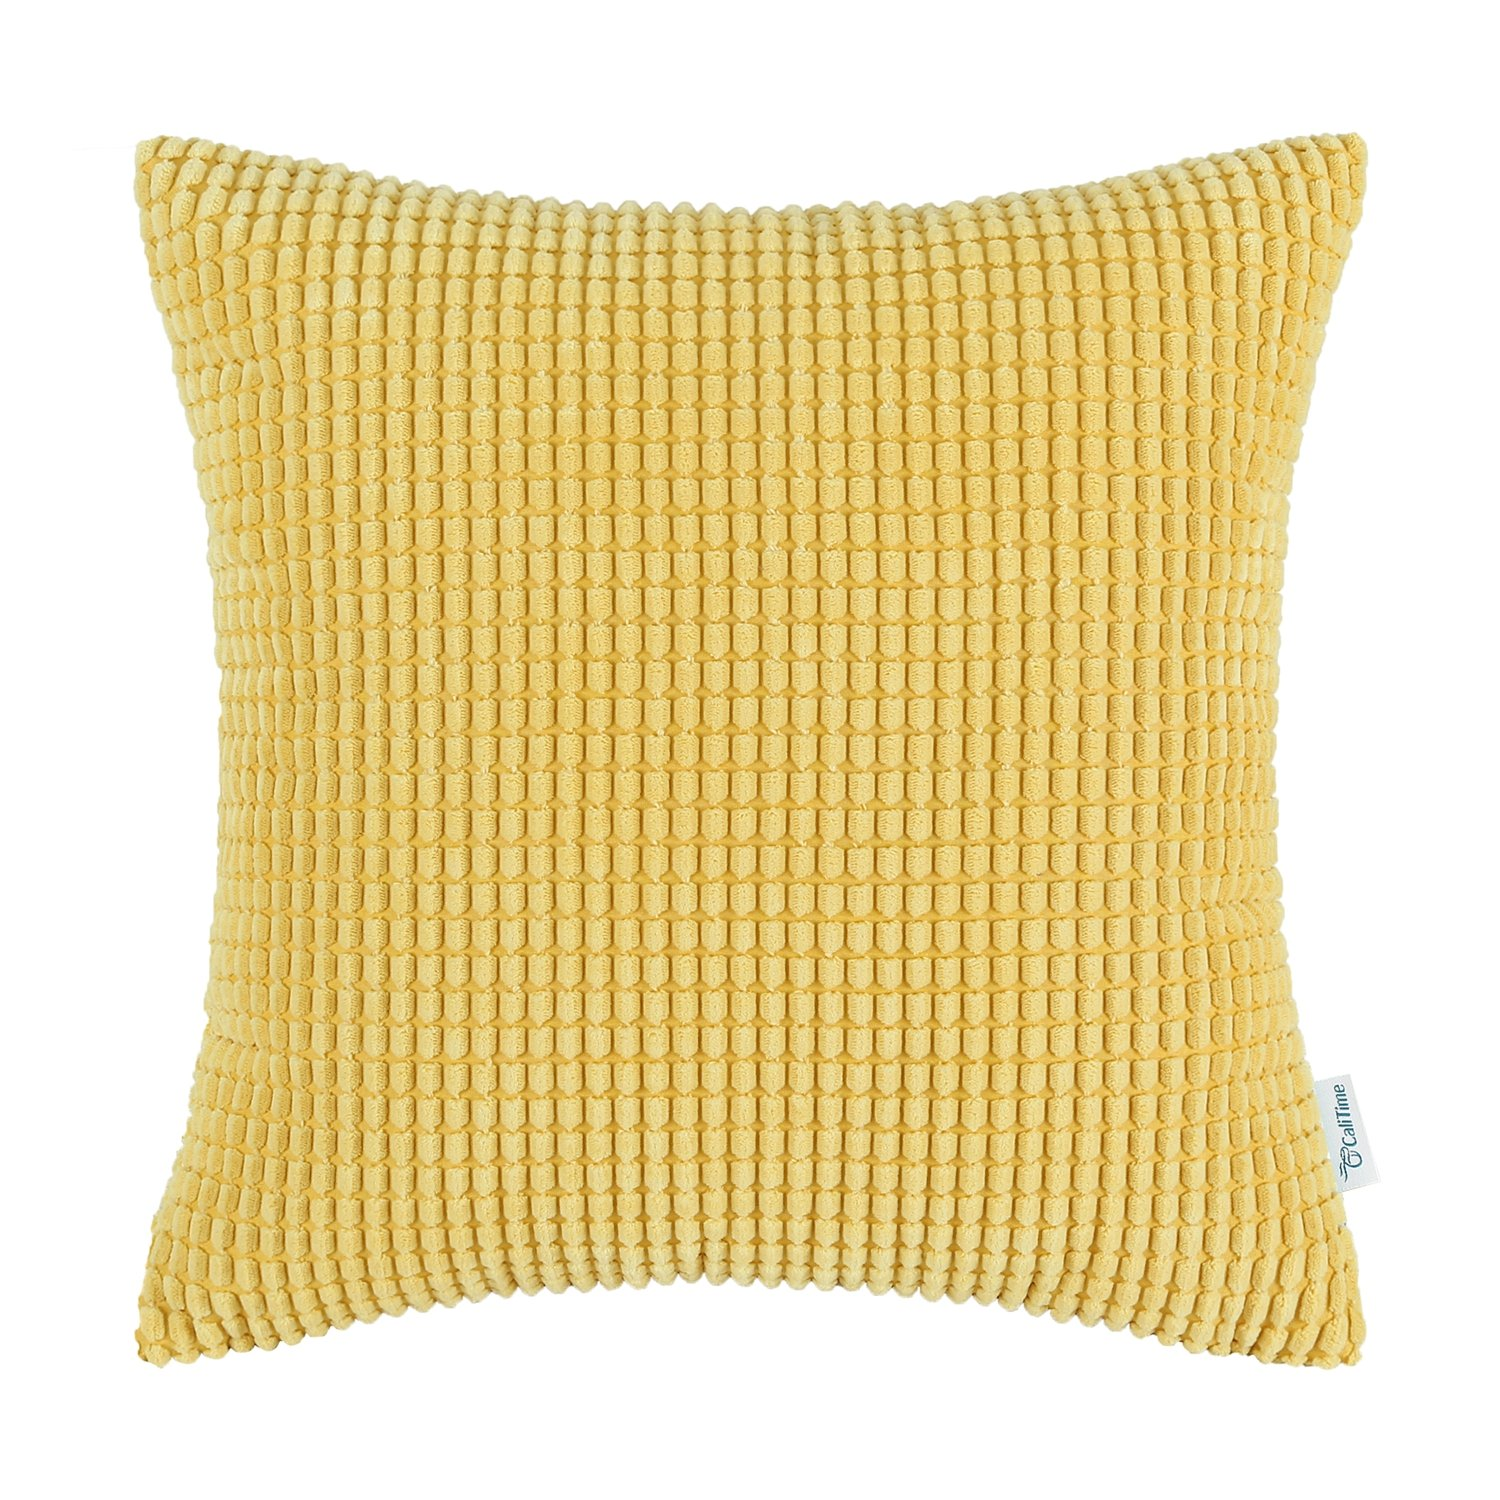 CaliTime Cozy Throw Pillow Cover Case for Couch Sofa Bed Comfortable Supersoft Corduroy Corn Striped Both Sides 24 X 24 Inches Gold/Yellow